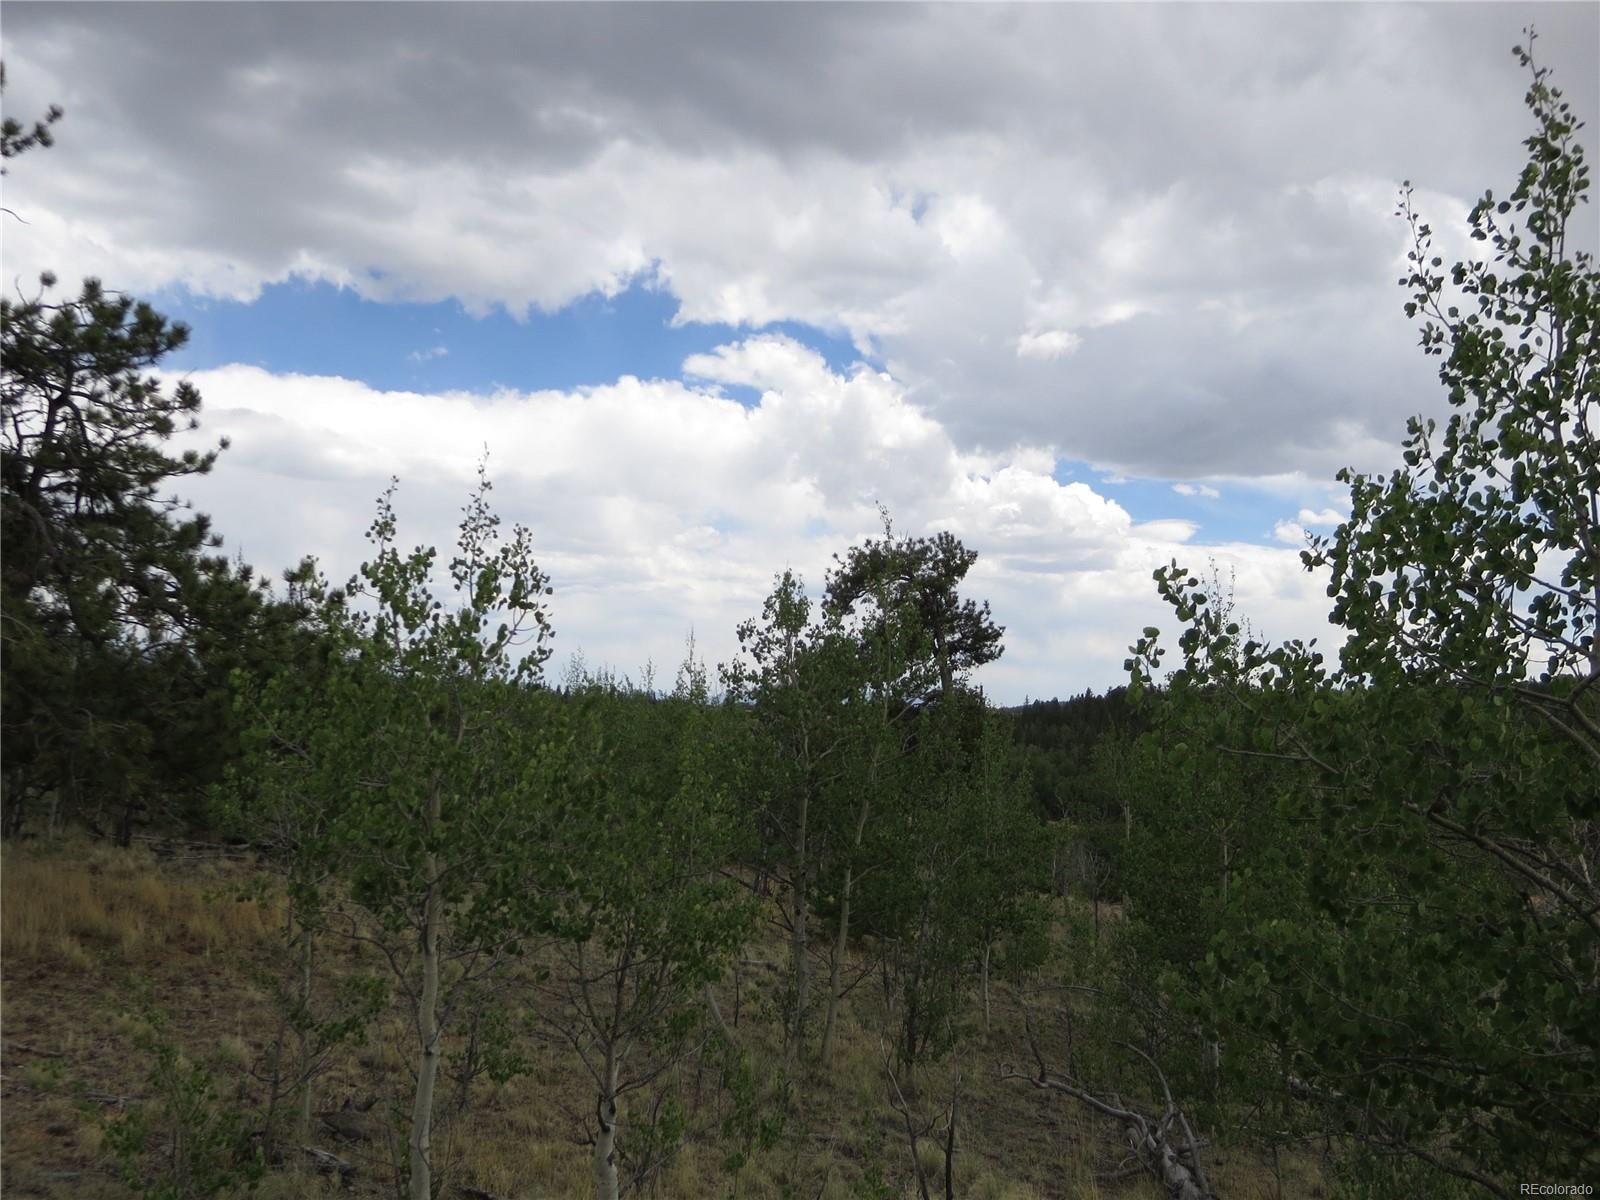 Lot with Aspen and Pine trees in natural setting